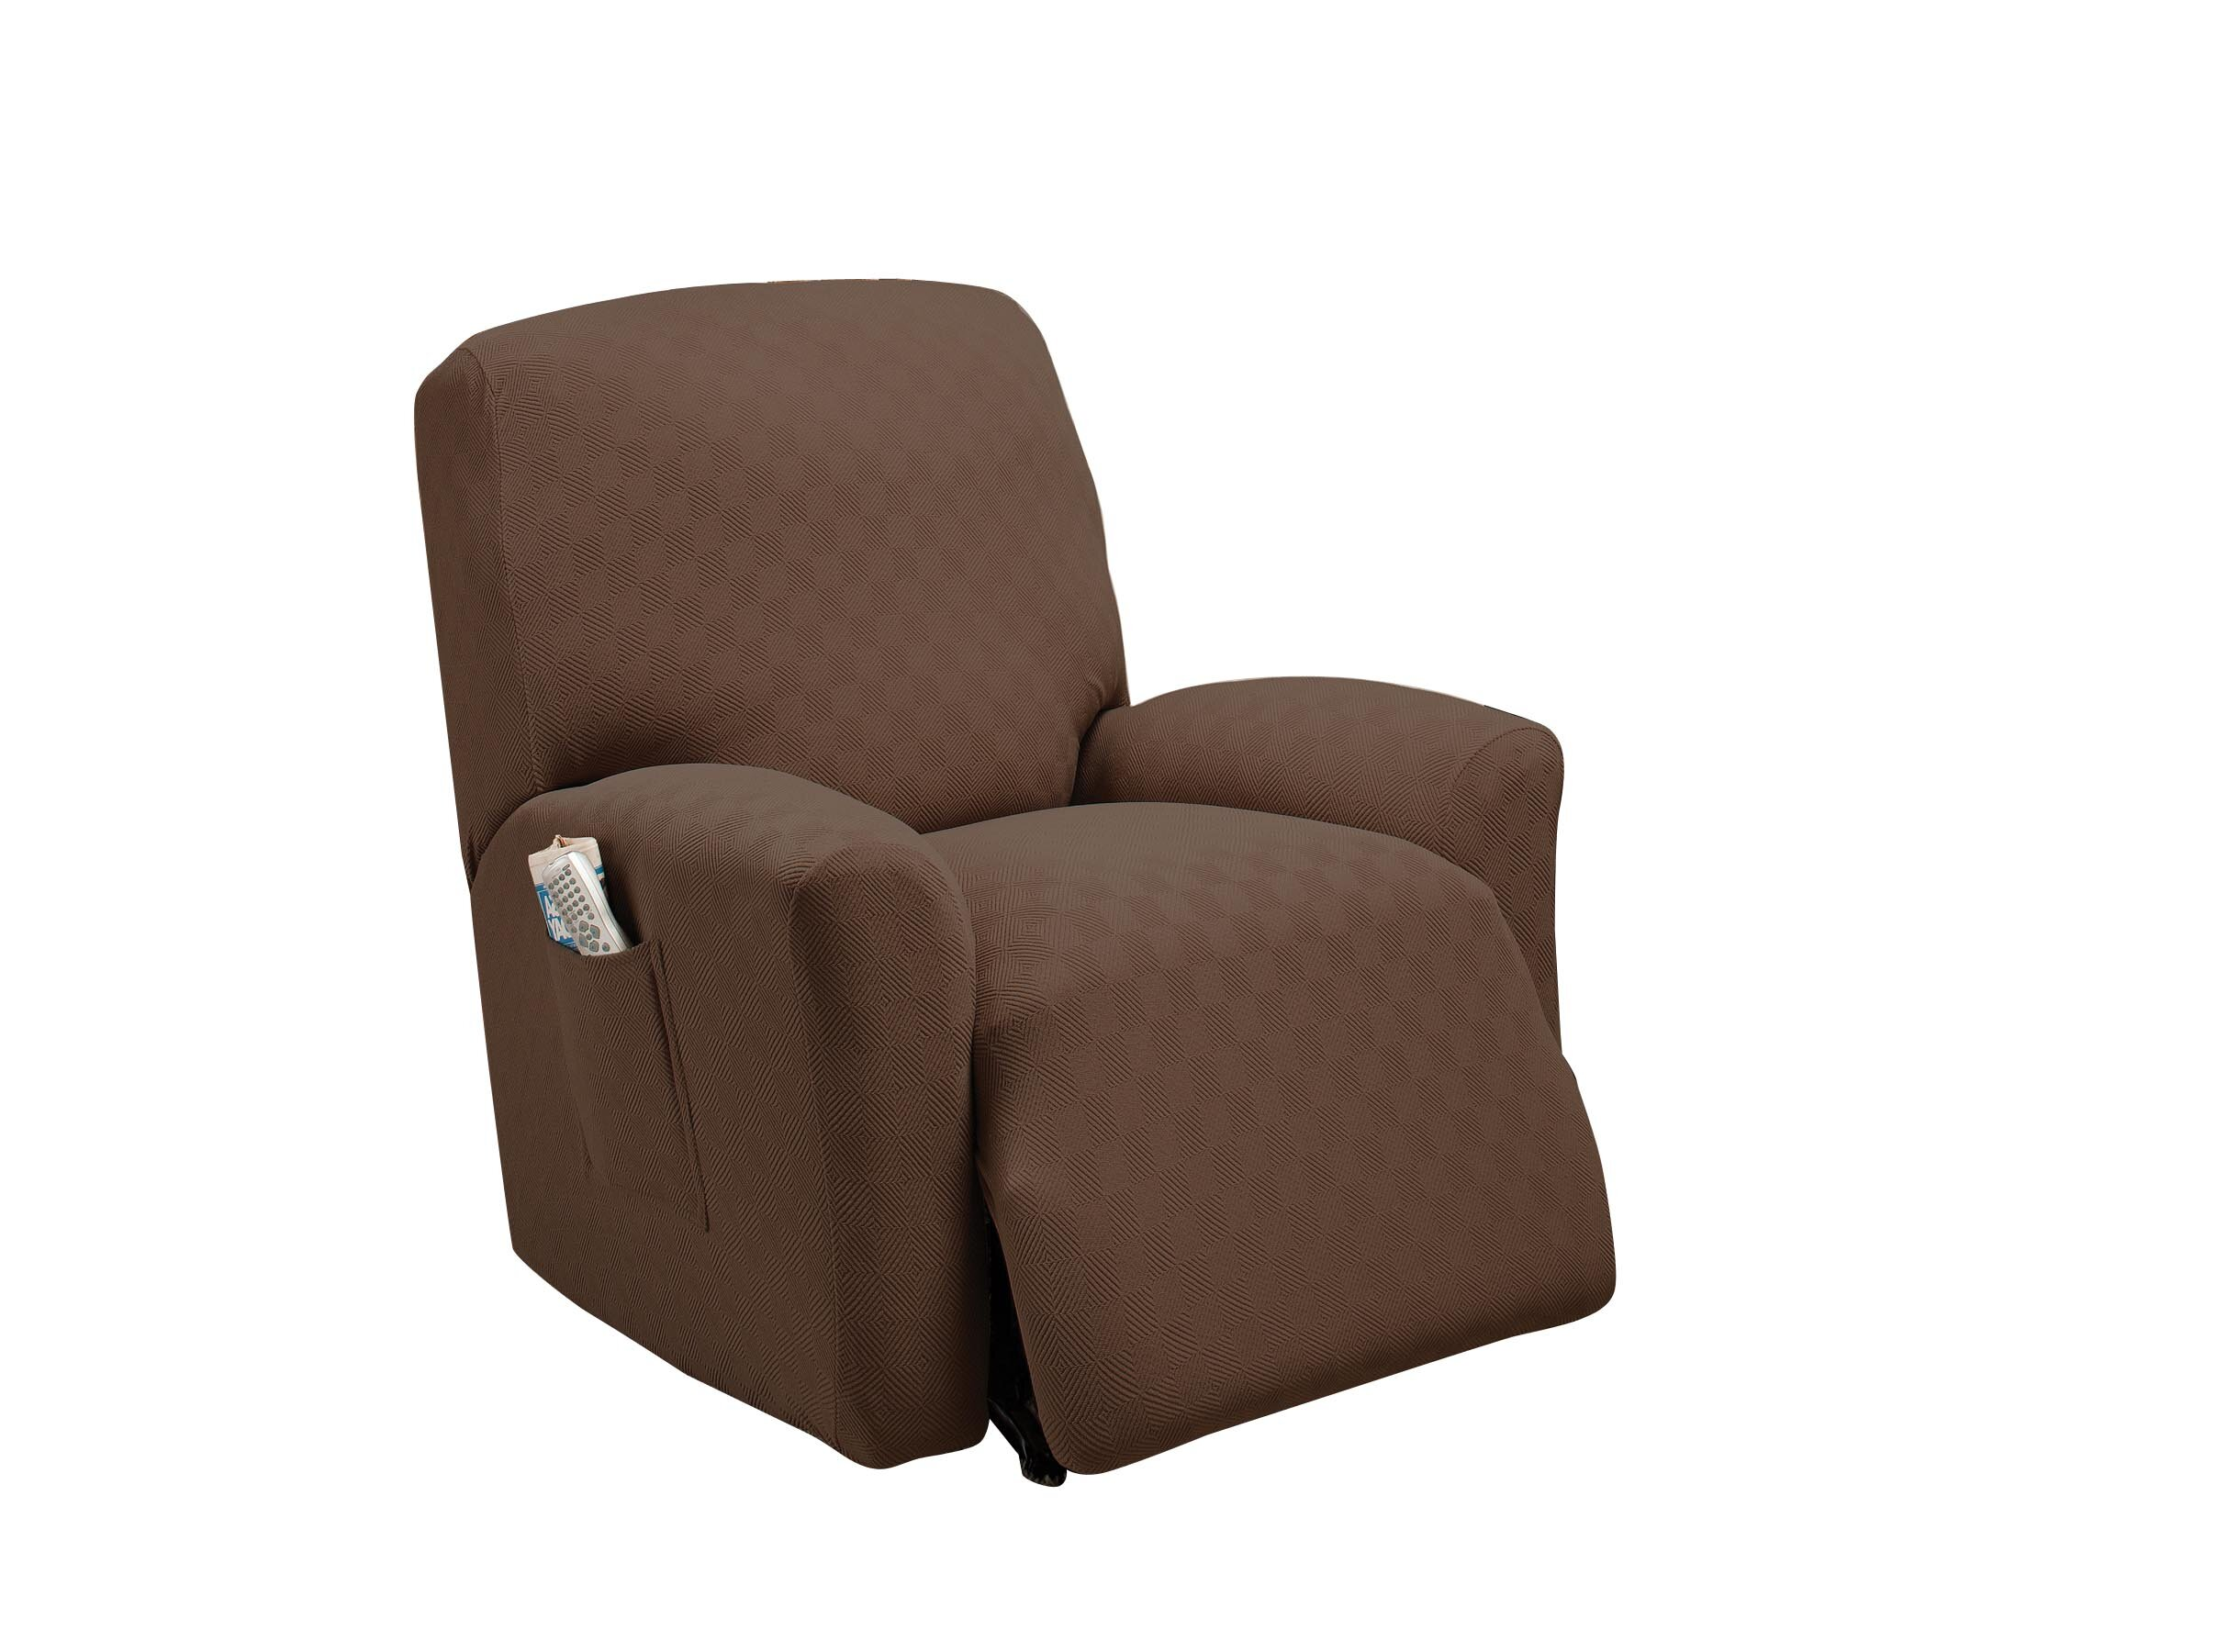 recliner covers protector options star jeffreyhomefivestarreclinerprotector home jeffrey cfm hayneedle product gold five